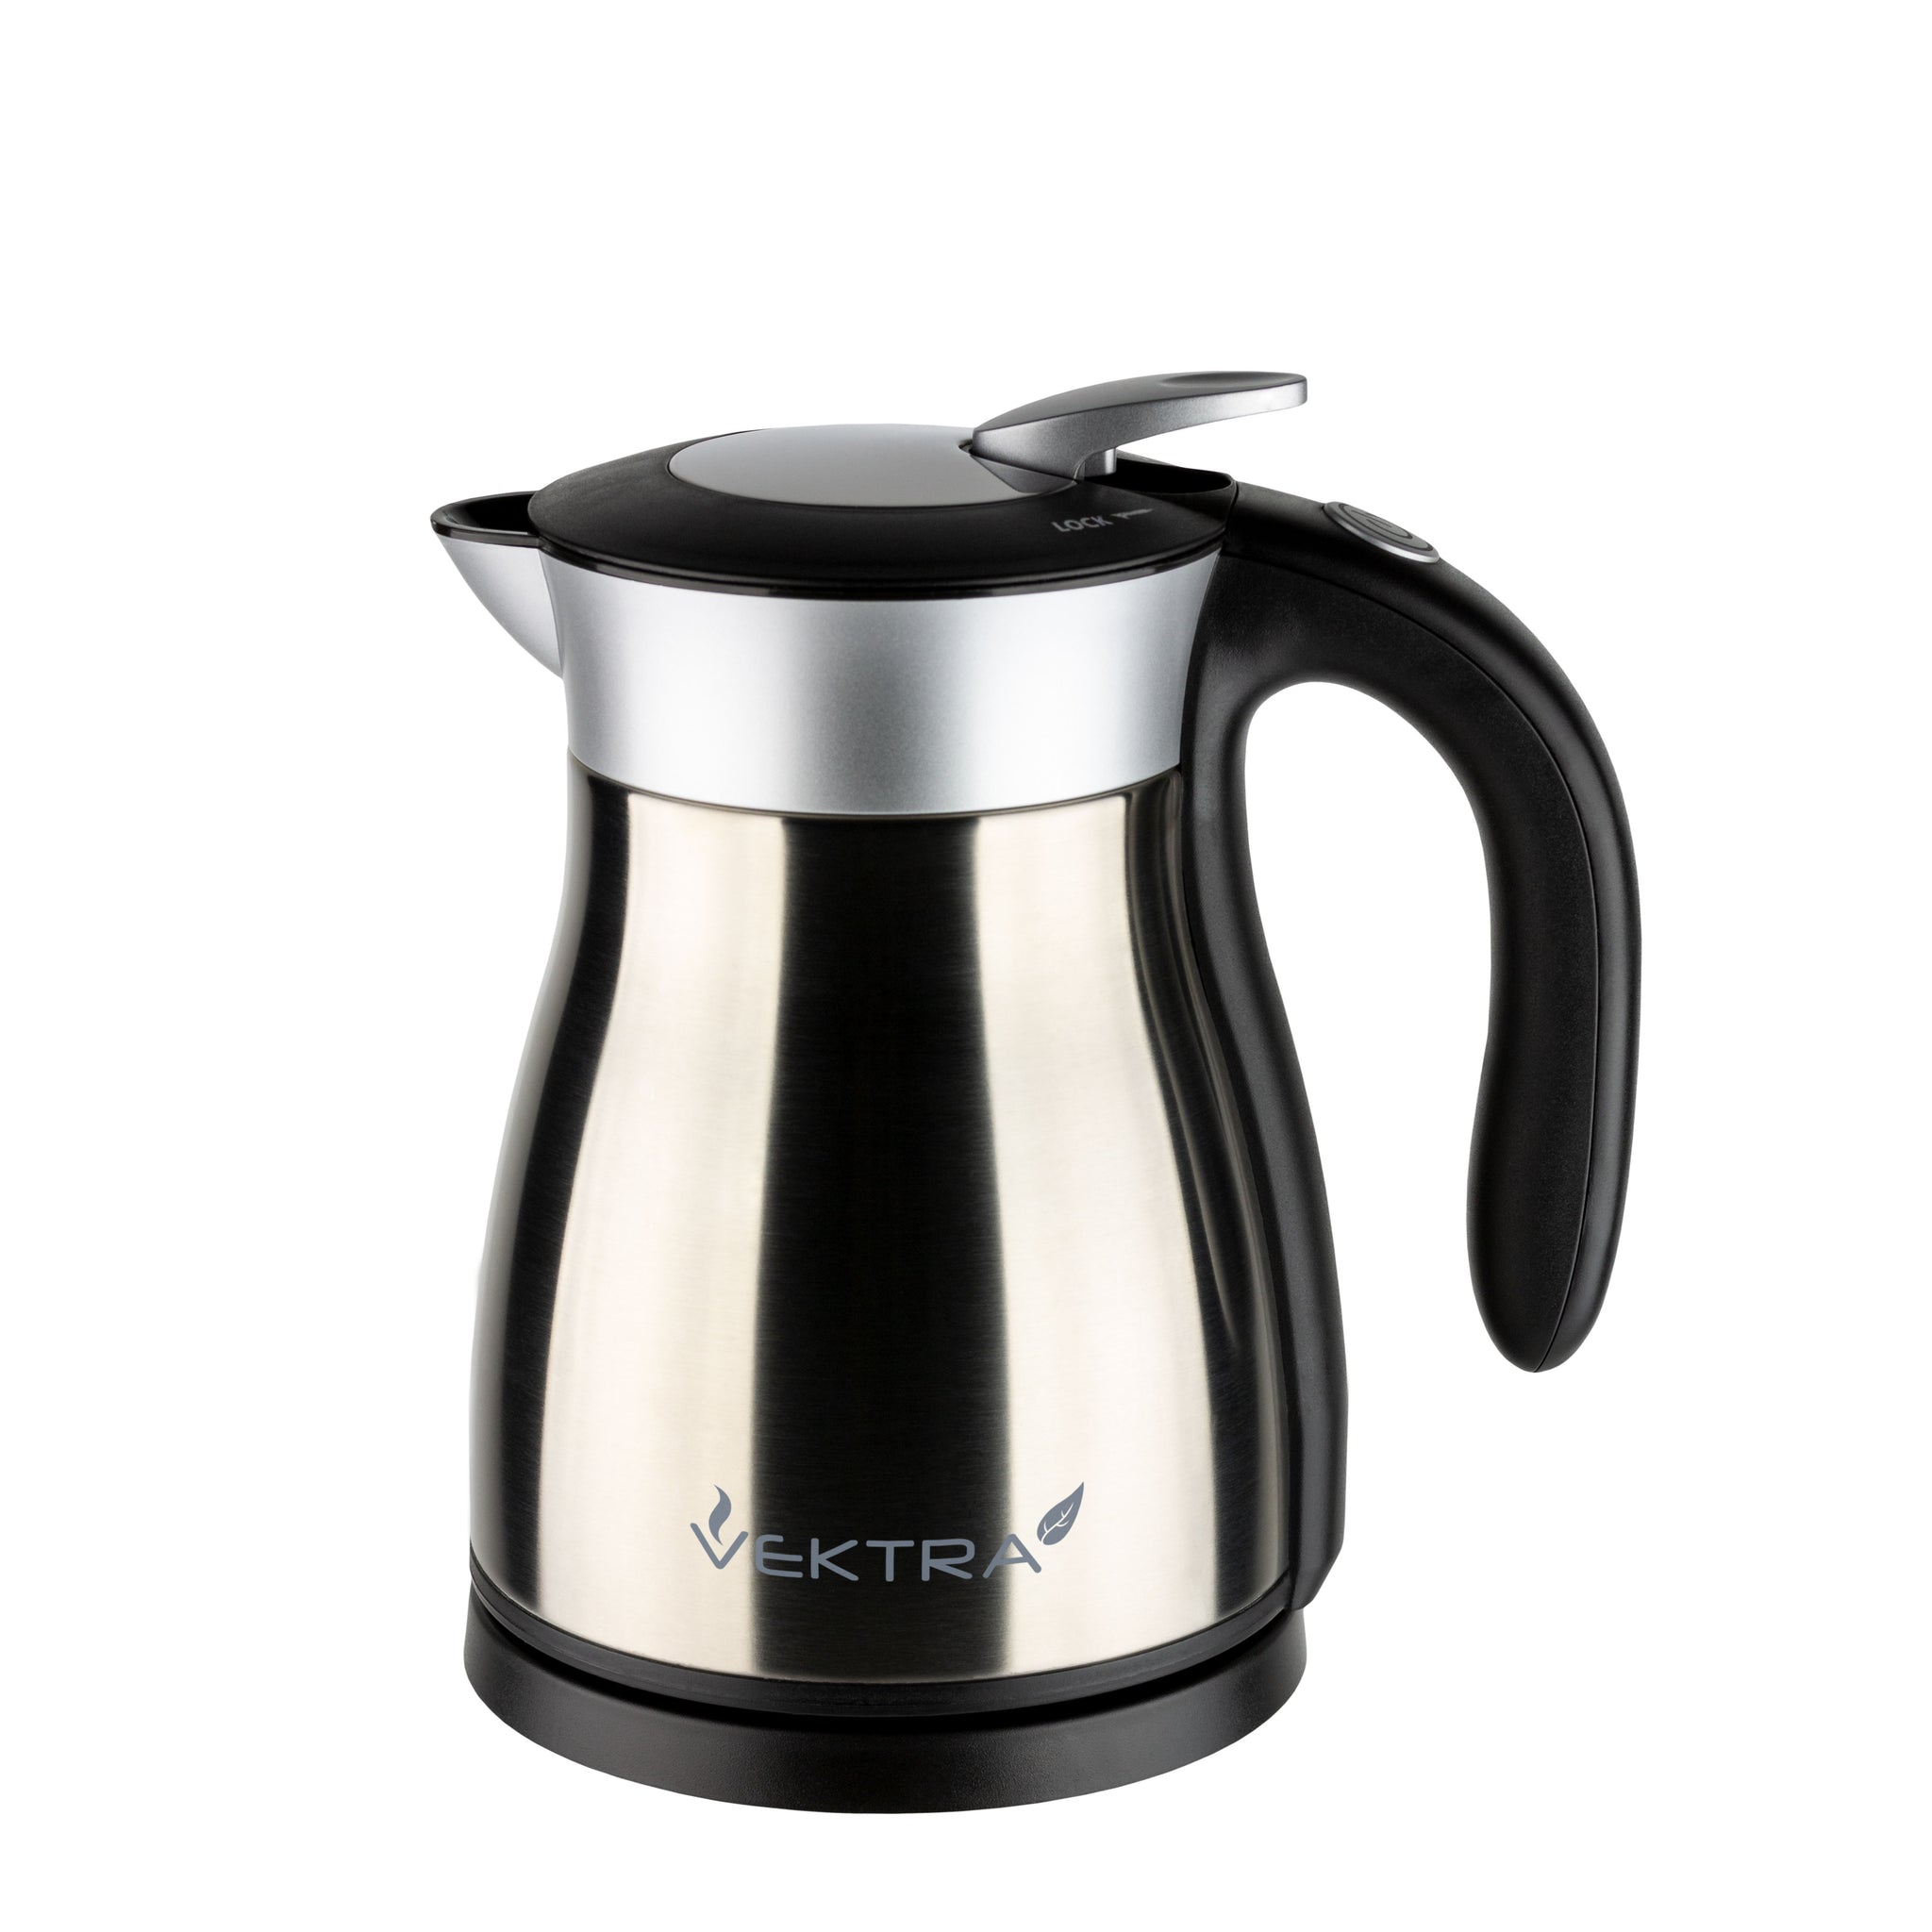 Vektra 1.2L Stainless Steel